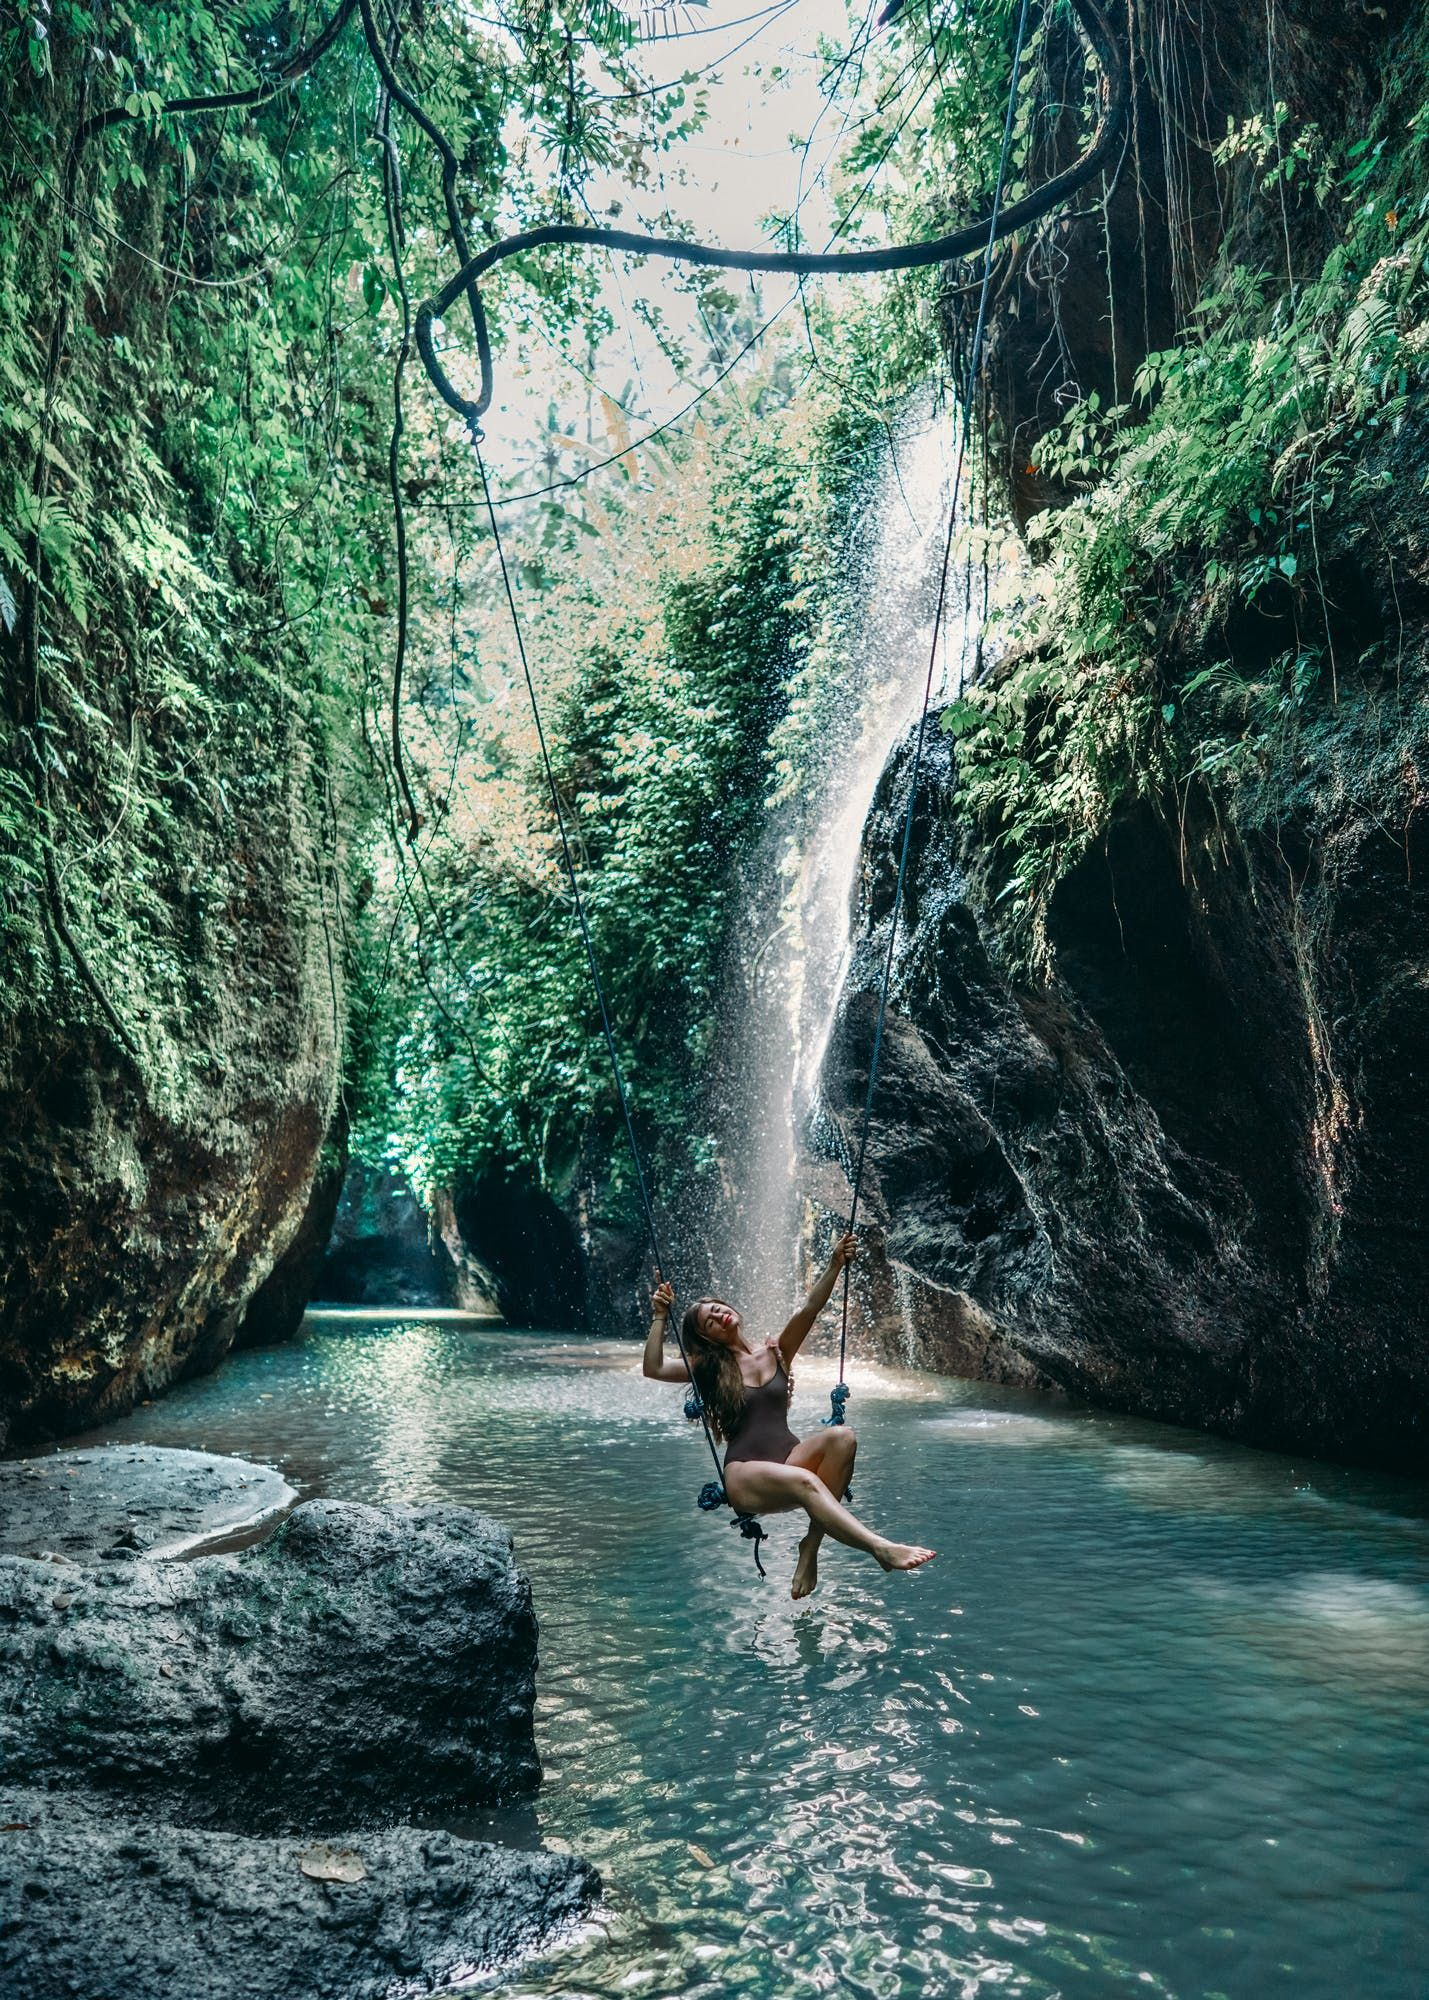 Jungles, Temples, and Waterfalls - A Lush Weekend in Bali, Indonesia | Away Lands - How to see it all in a few day: Nusa Dua, the beaches of Uluwatu, Rice Terraces of Ubud, Monkeys, Bali Swings, Bali Gates, and the best Beach Club on The Island of the Gods